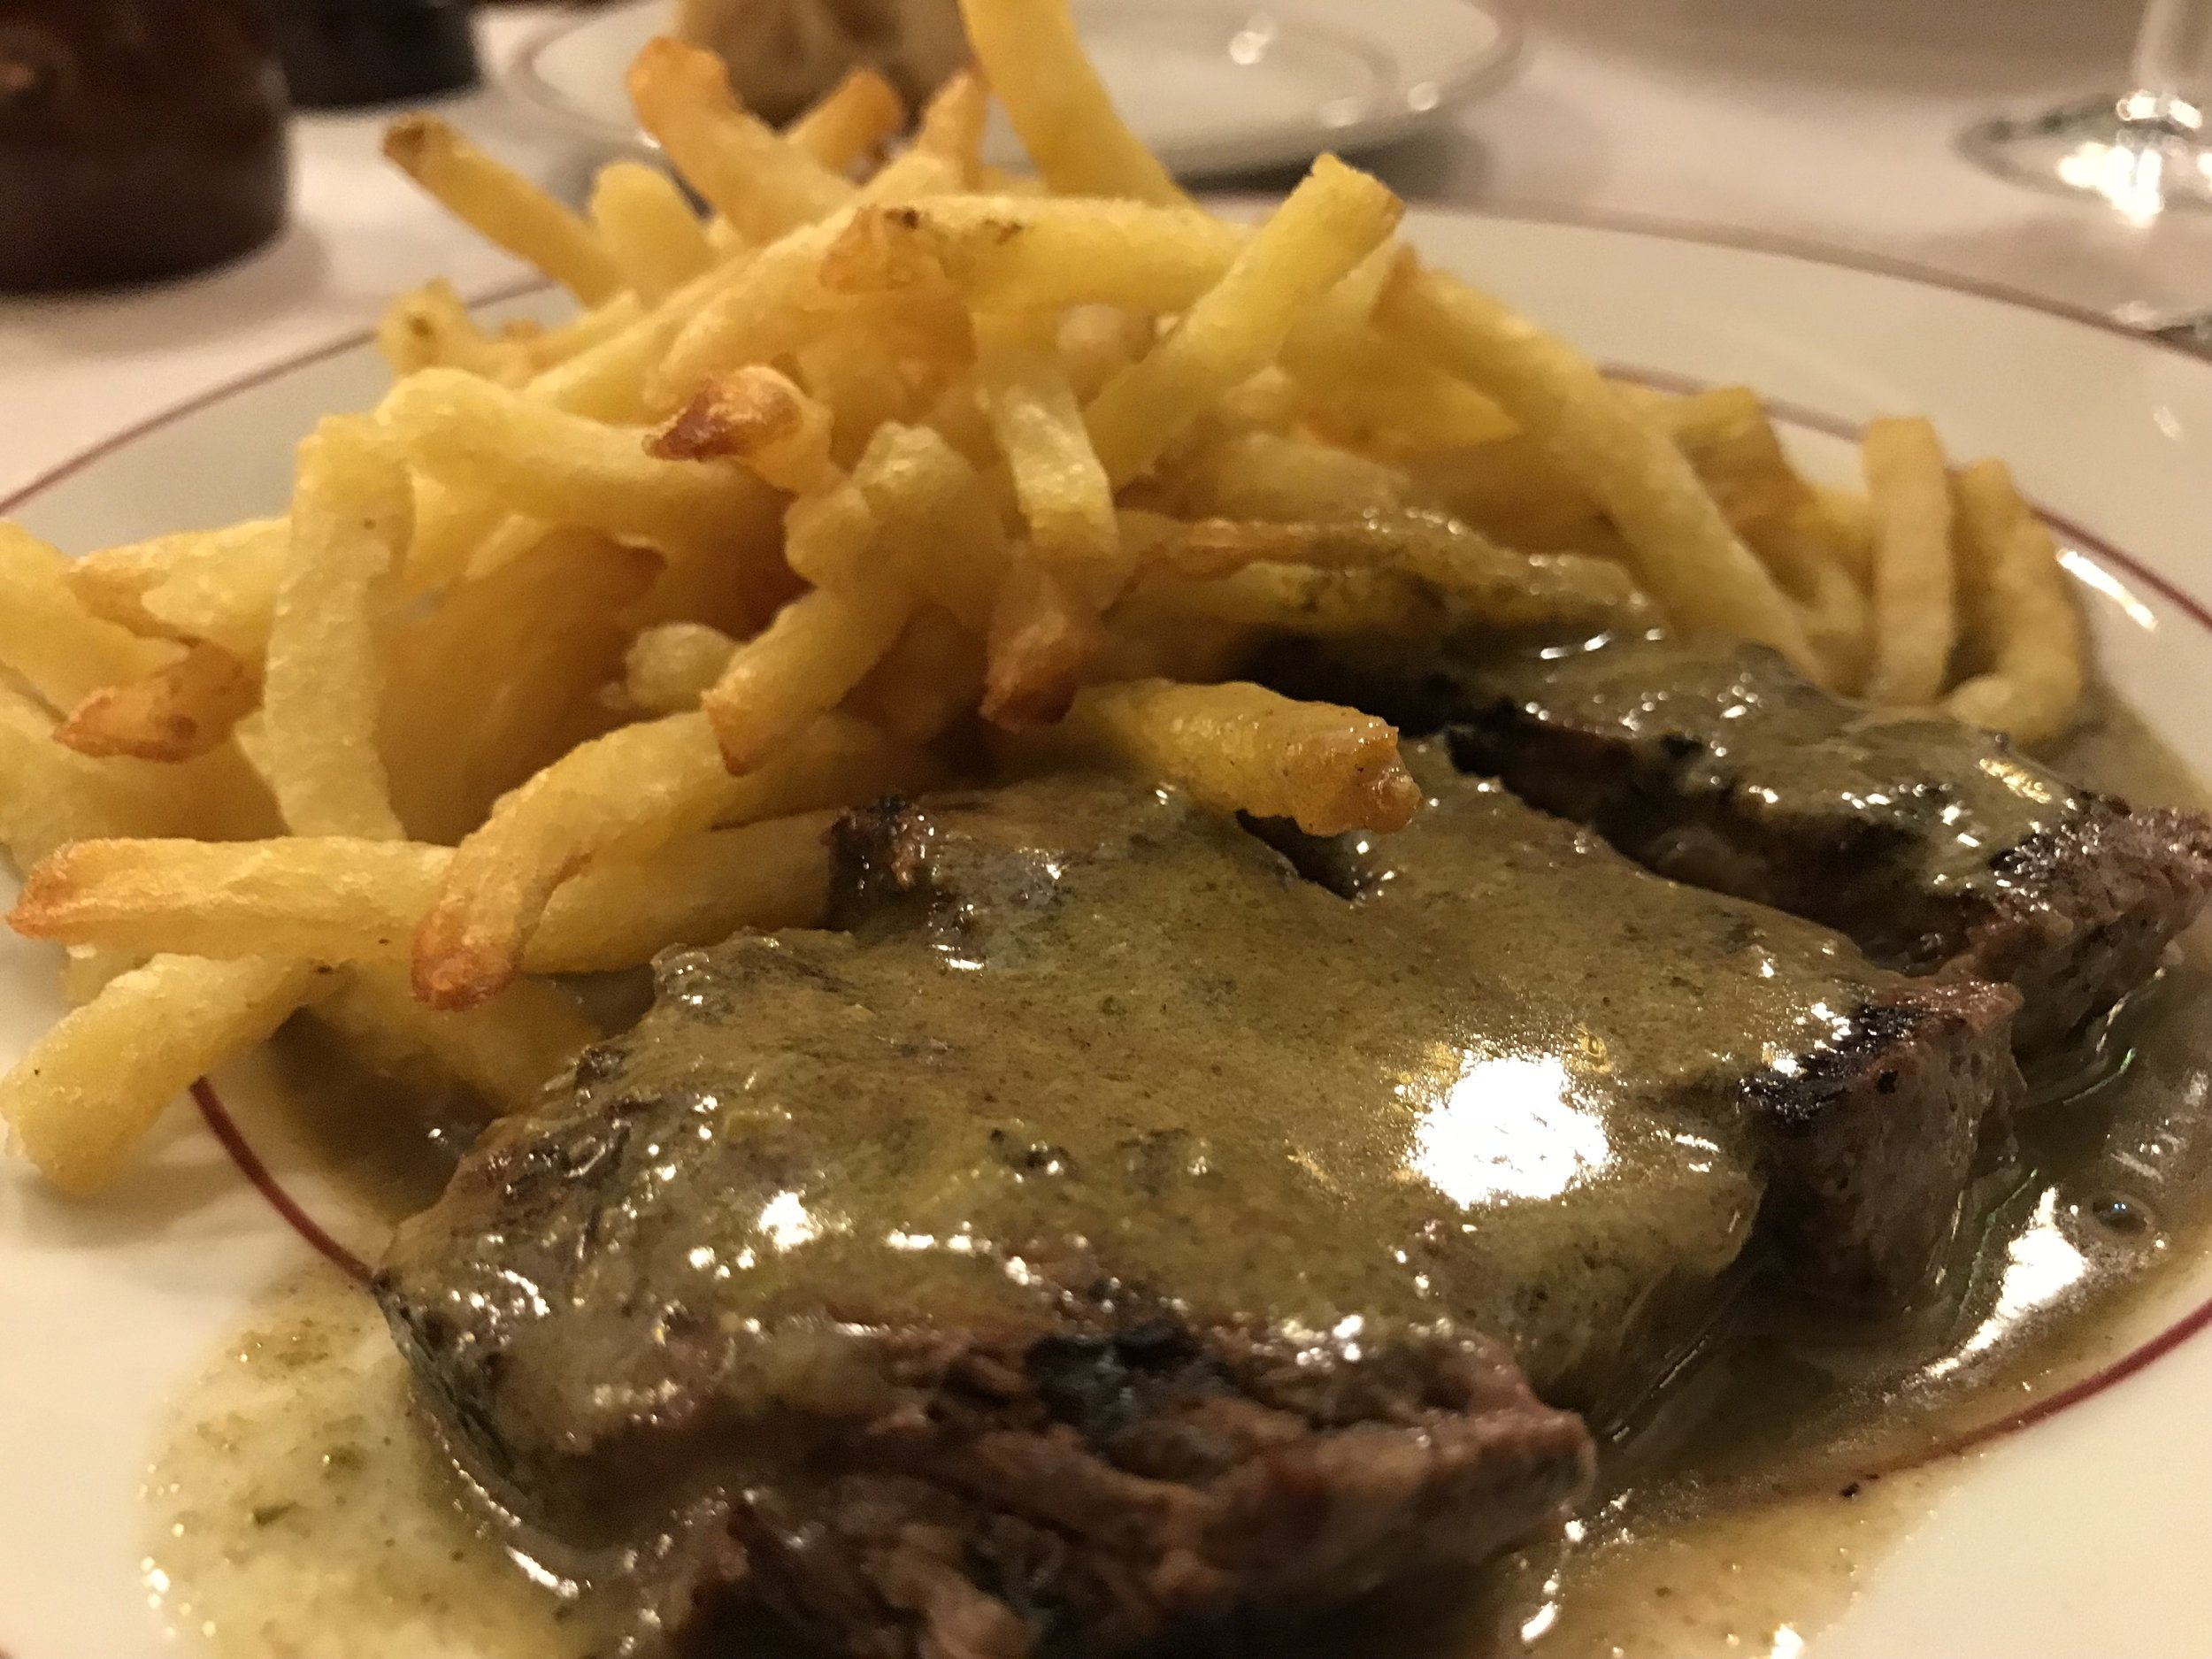 Steak and frites is the only thing Le Relais de l'Entrecôte serves, along with bread and a side salad